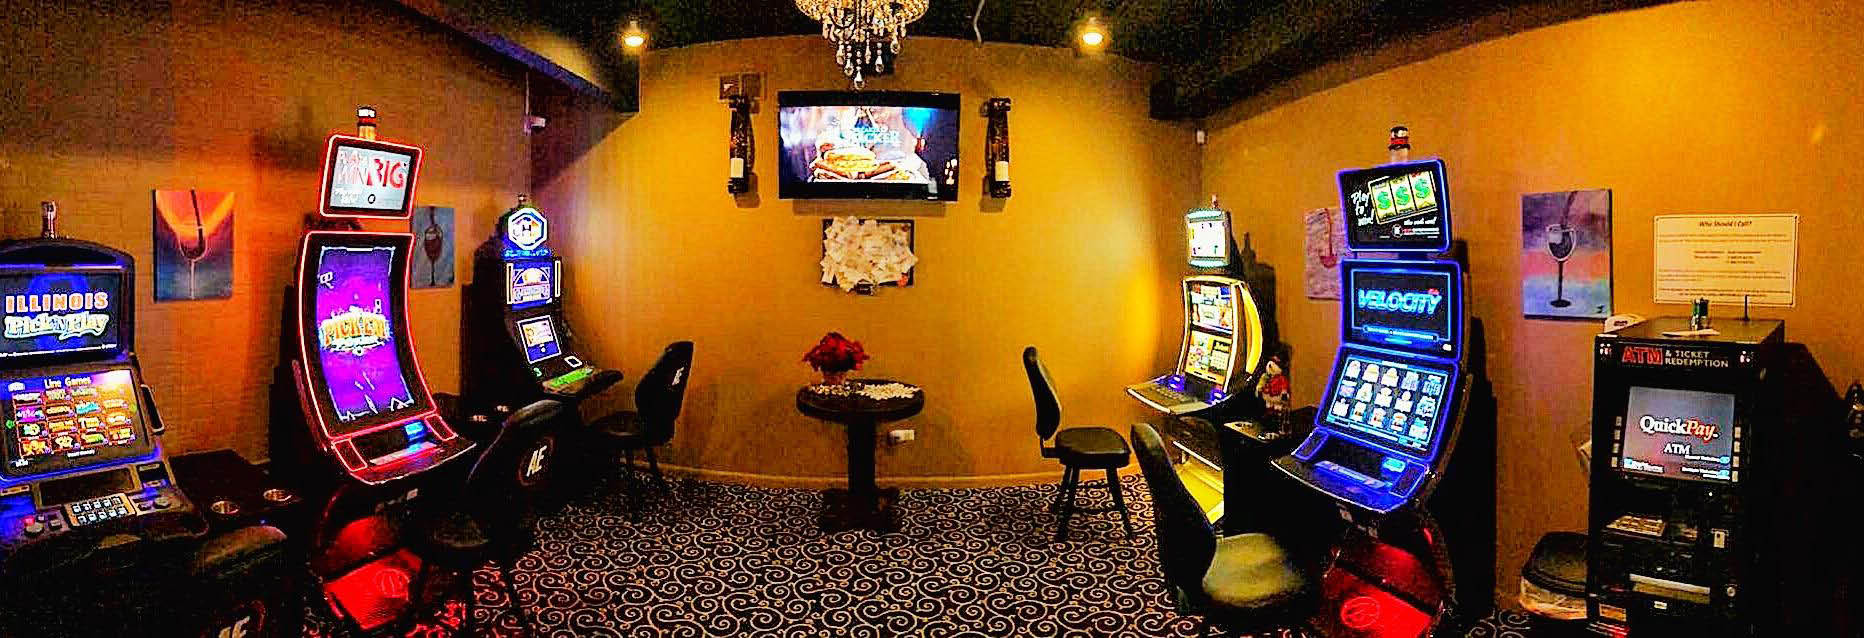 Stop in to play our games and stay for lunch or dinner at Jak's Place.